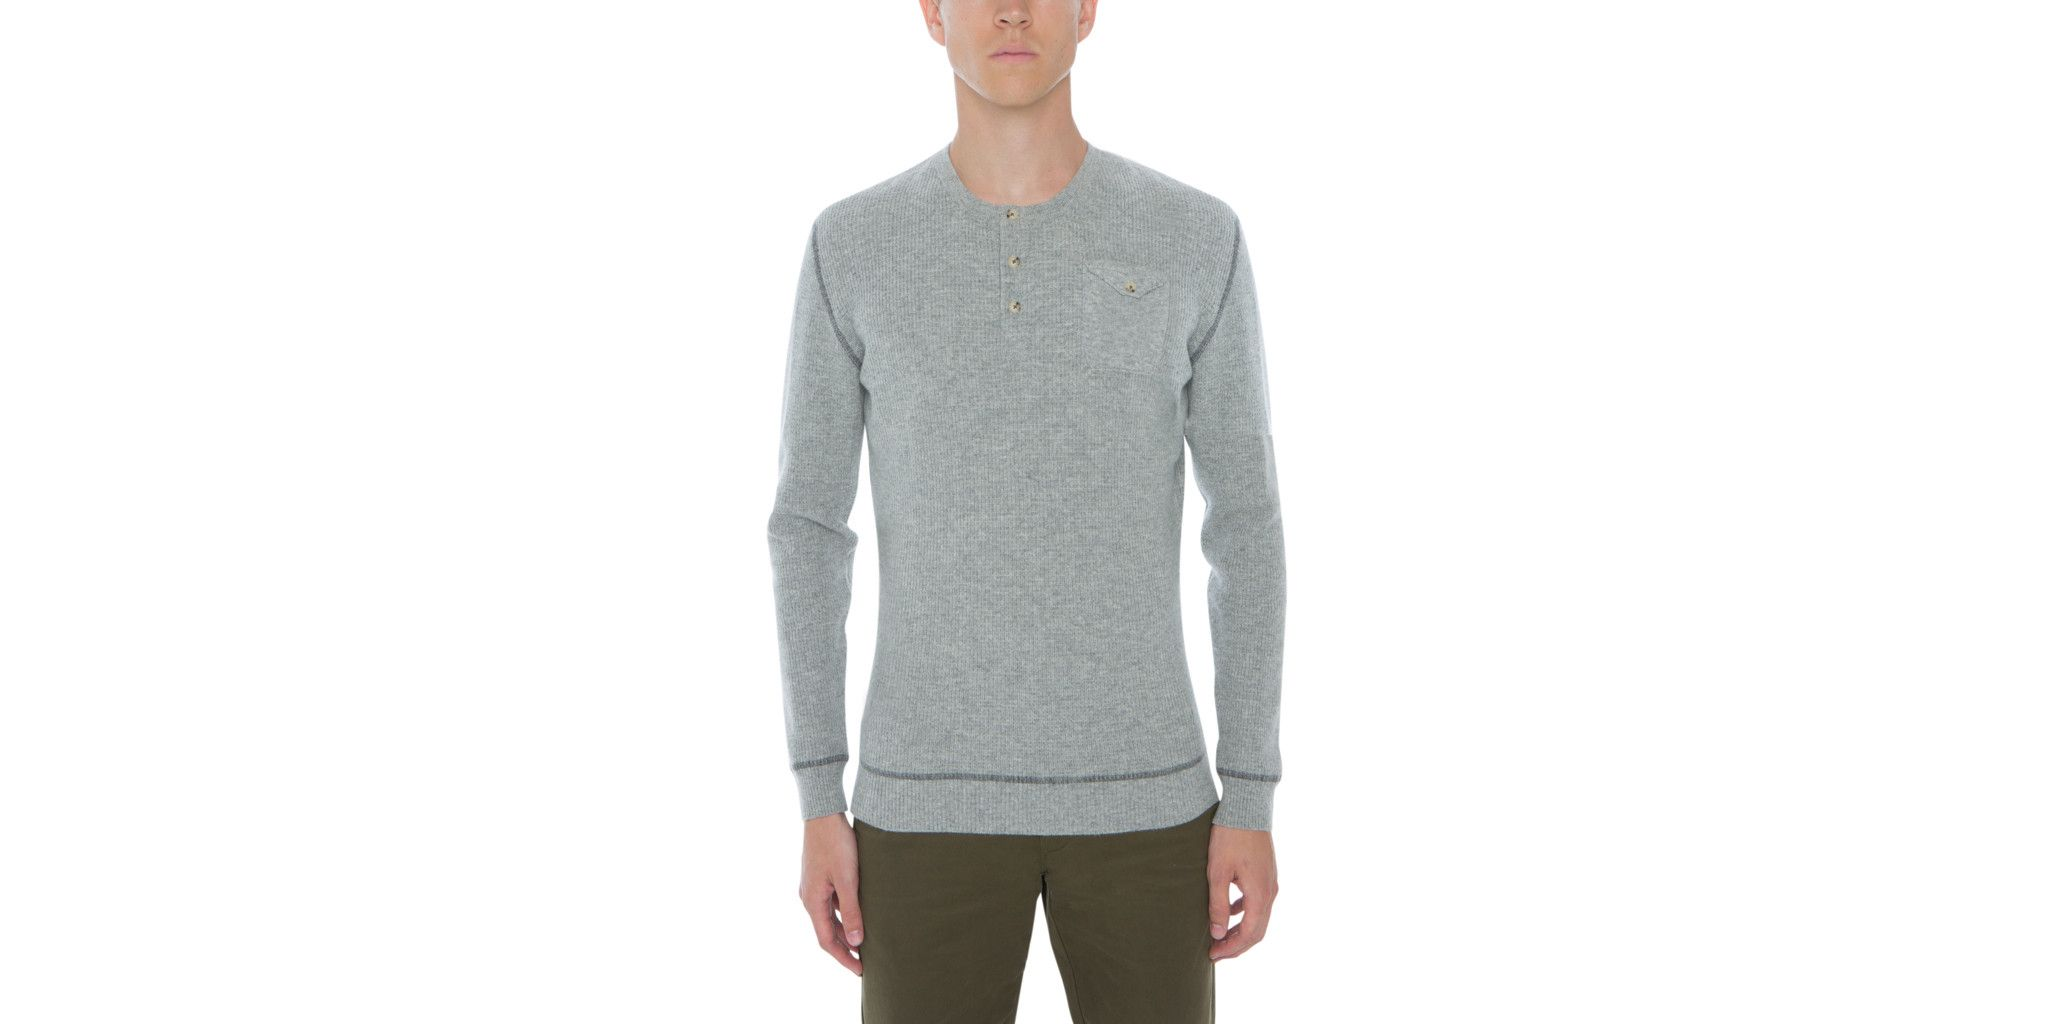 The henley collar sweater in pure cashmere, worked in a soft single tread is inspired by traditional English rowing heritage. Naadam's taste is reiterated in th